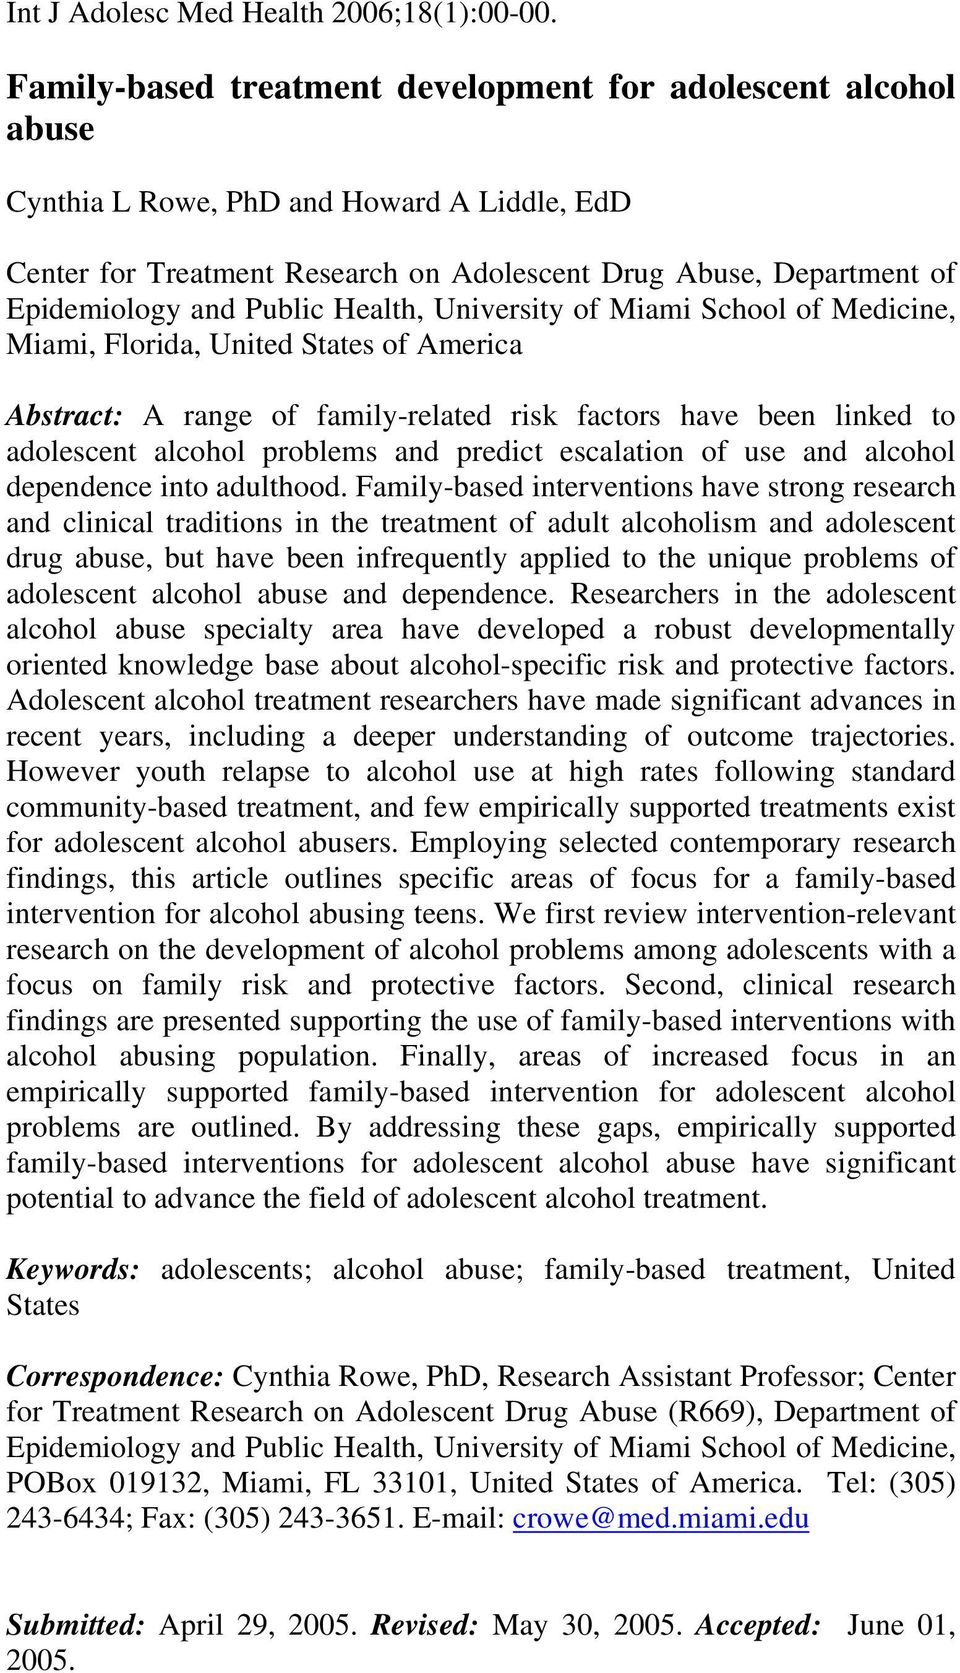 Public Health, University of Miami School of Medicine, Miami, Florida, United States of America Abstract: A range of family-related risk factors have been linked to adolescent alcohol problems and